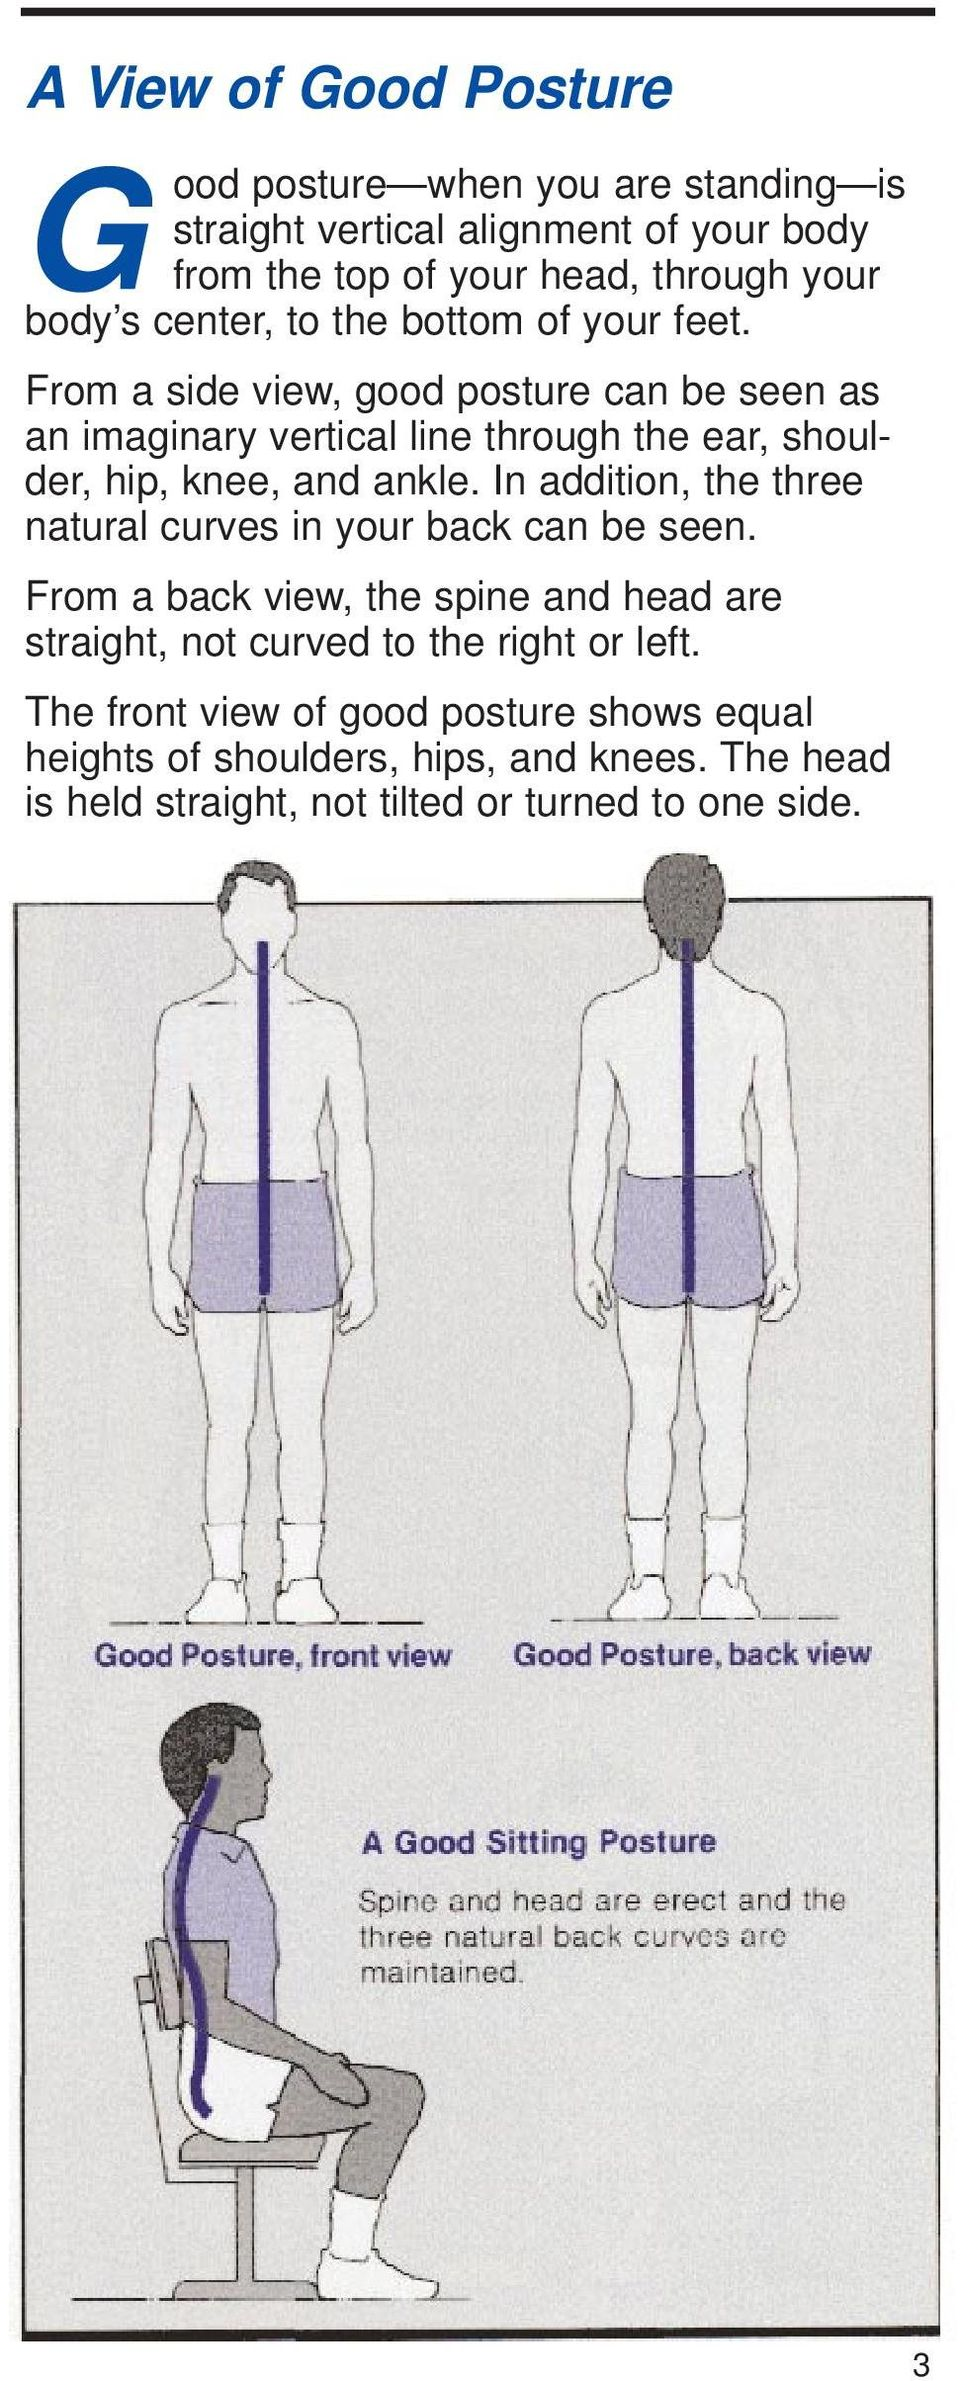 From a side view, good posture can be seen as an imaginary vertical line through the ear, shoulder, hip, knee, and ankle.